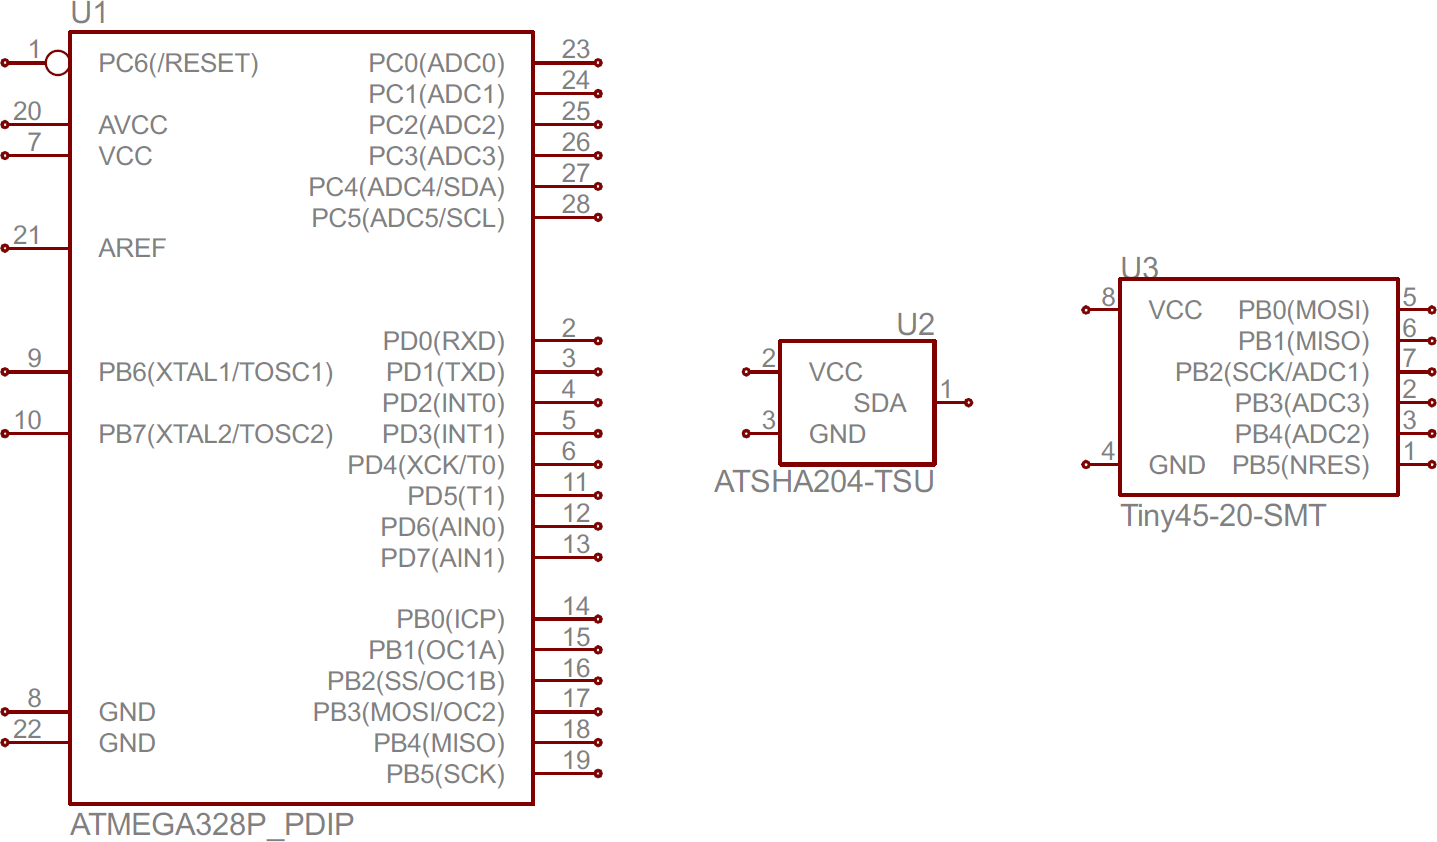 ATmega328, ATSHA204, and ATtiny45 IC symbols. Schematic ...